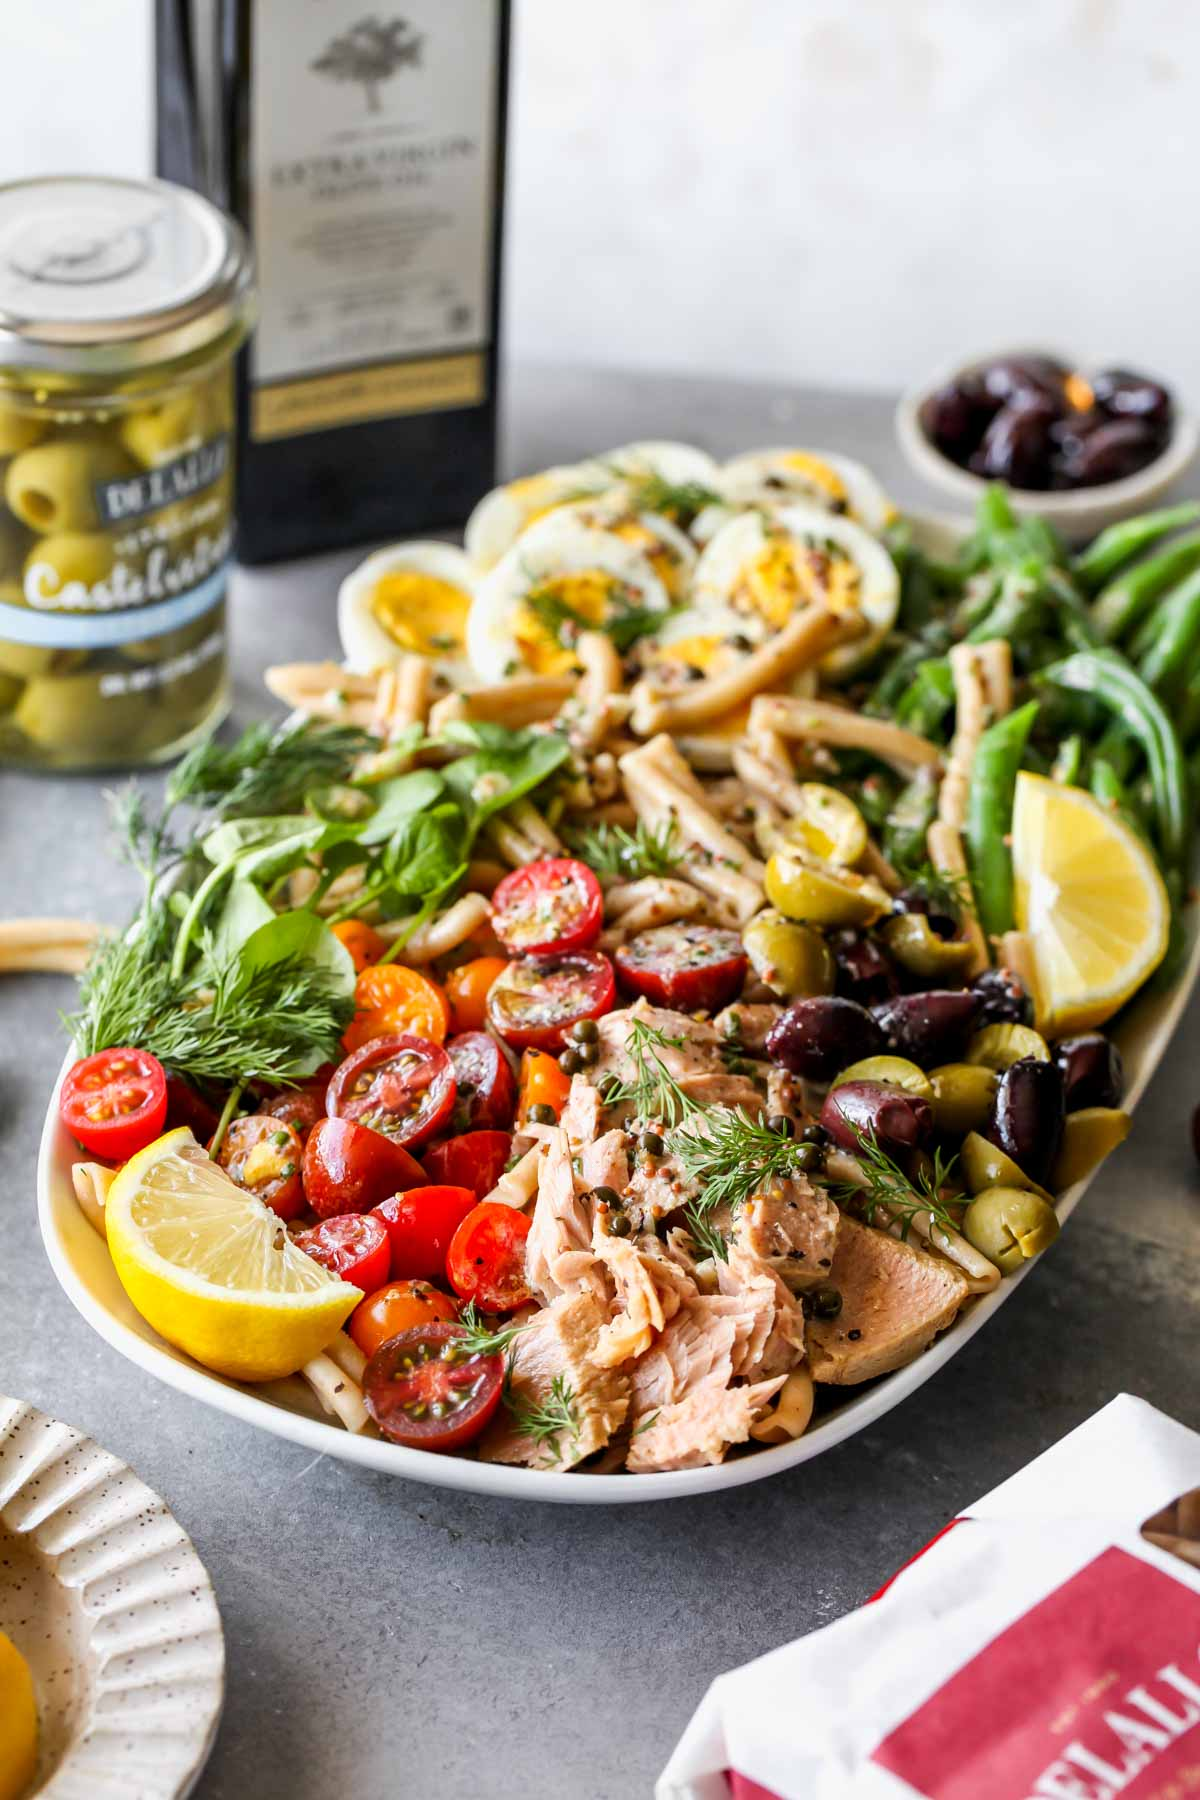 Niçoise Pasta Salad with olive oil and olive jar in the background